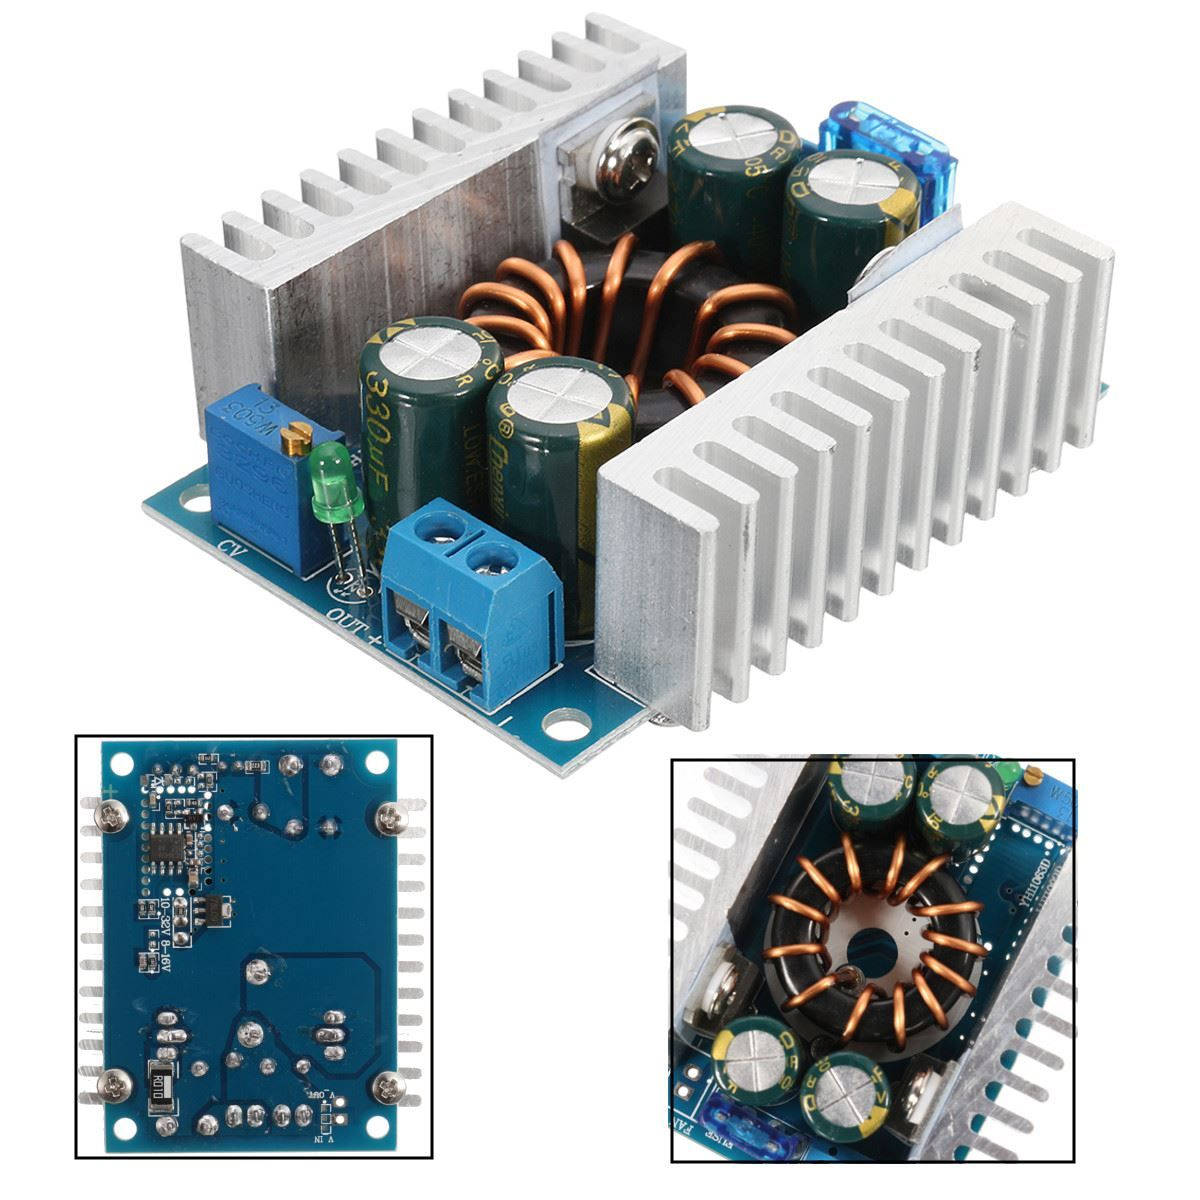 New Arrival Dc 3v 35v 0 10a Adjustable Digital Converter Step Up Semiconductors And Electronics In An Easy To Understand Boost Module